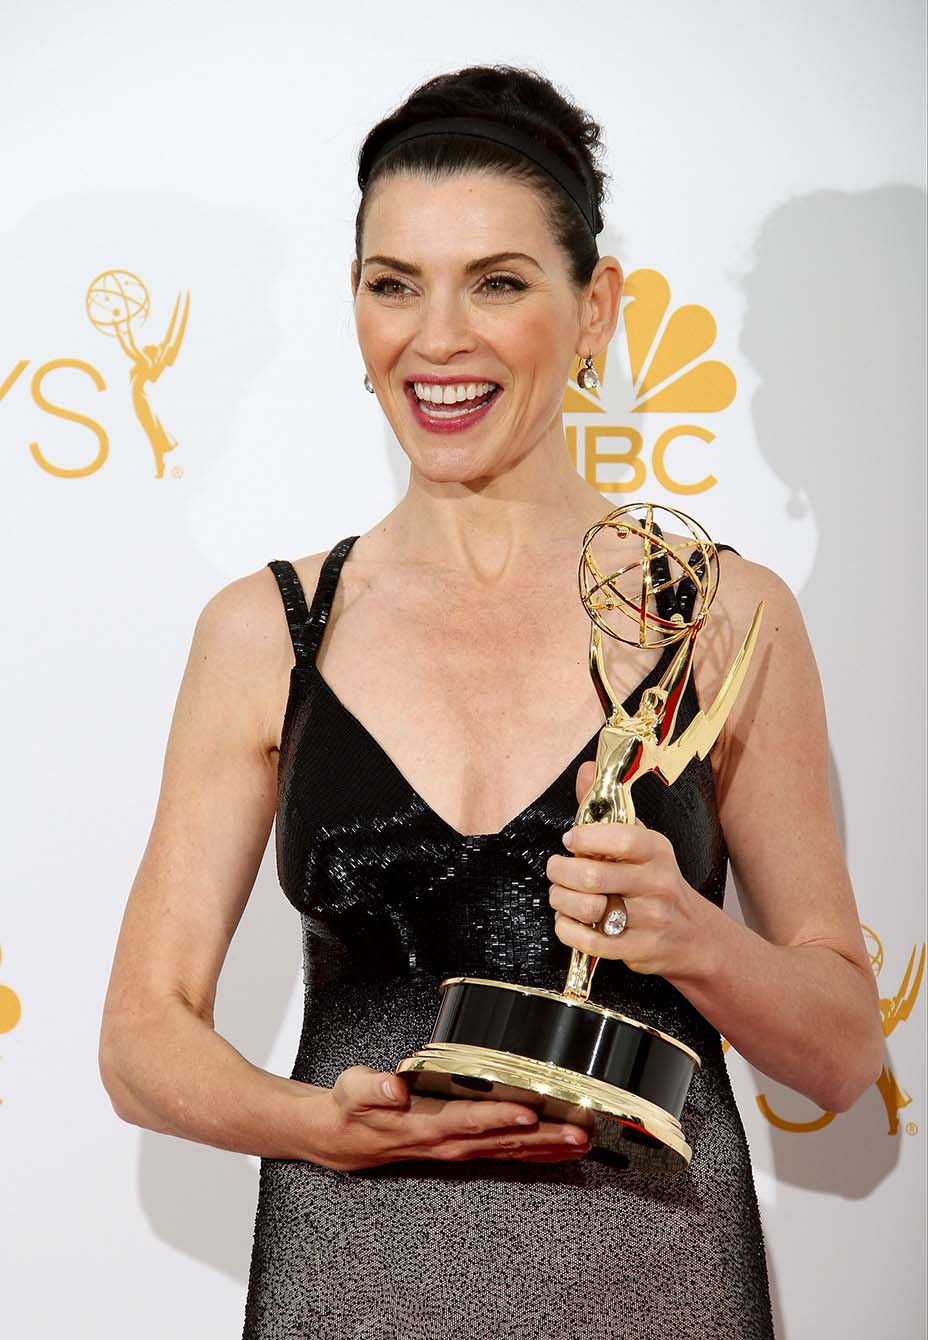 Julianna Margulies poses in the photo room with her award for Outstanding Lead Actress in a Drama Series for 'The Good Wife' at Nokia Theatre L.A. Live on August 25, 2014 in Los Angeles, California.